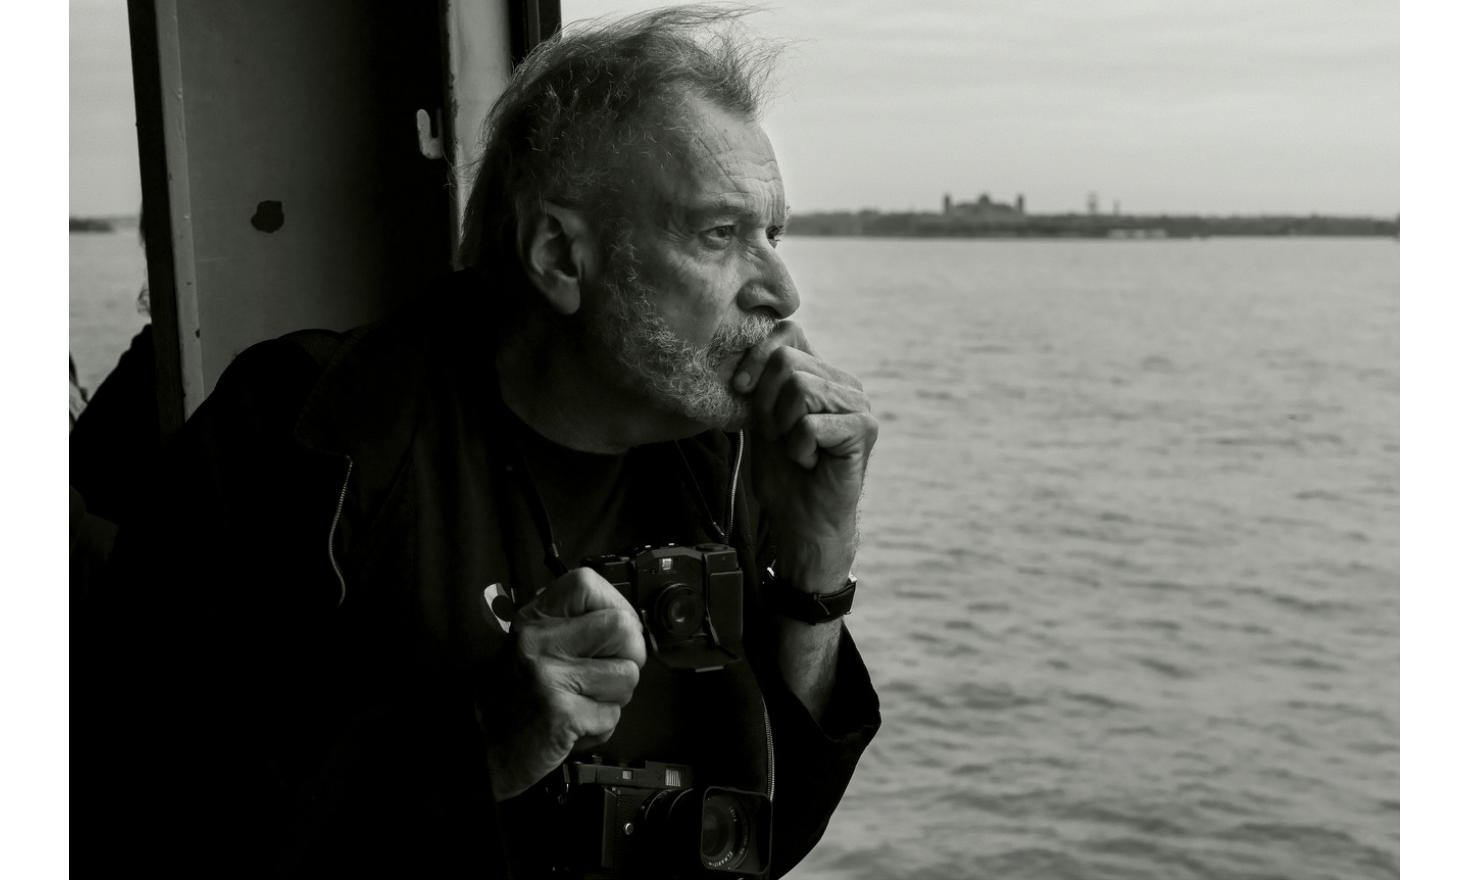 My father, Staten Island Ferry, New York. May 2015